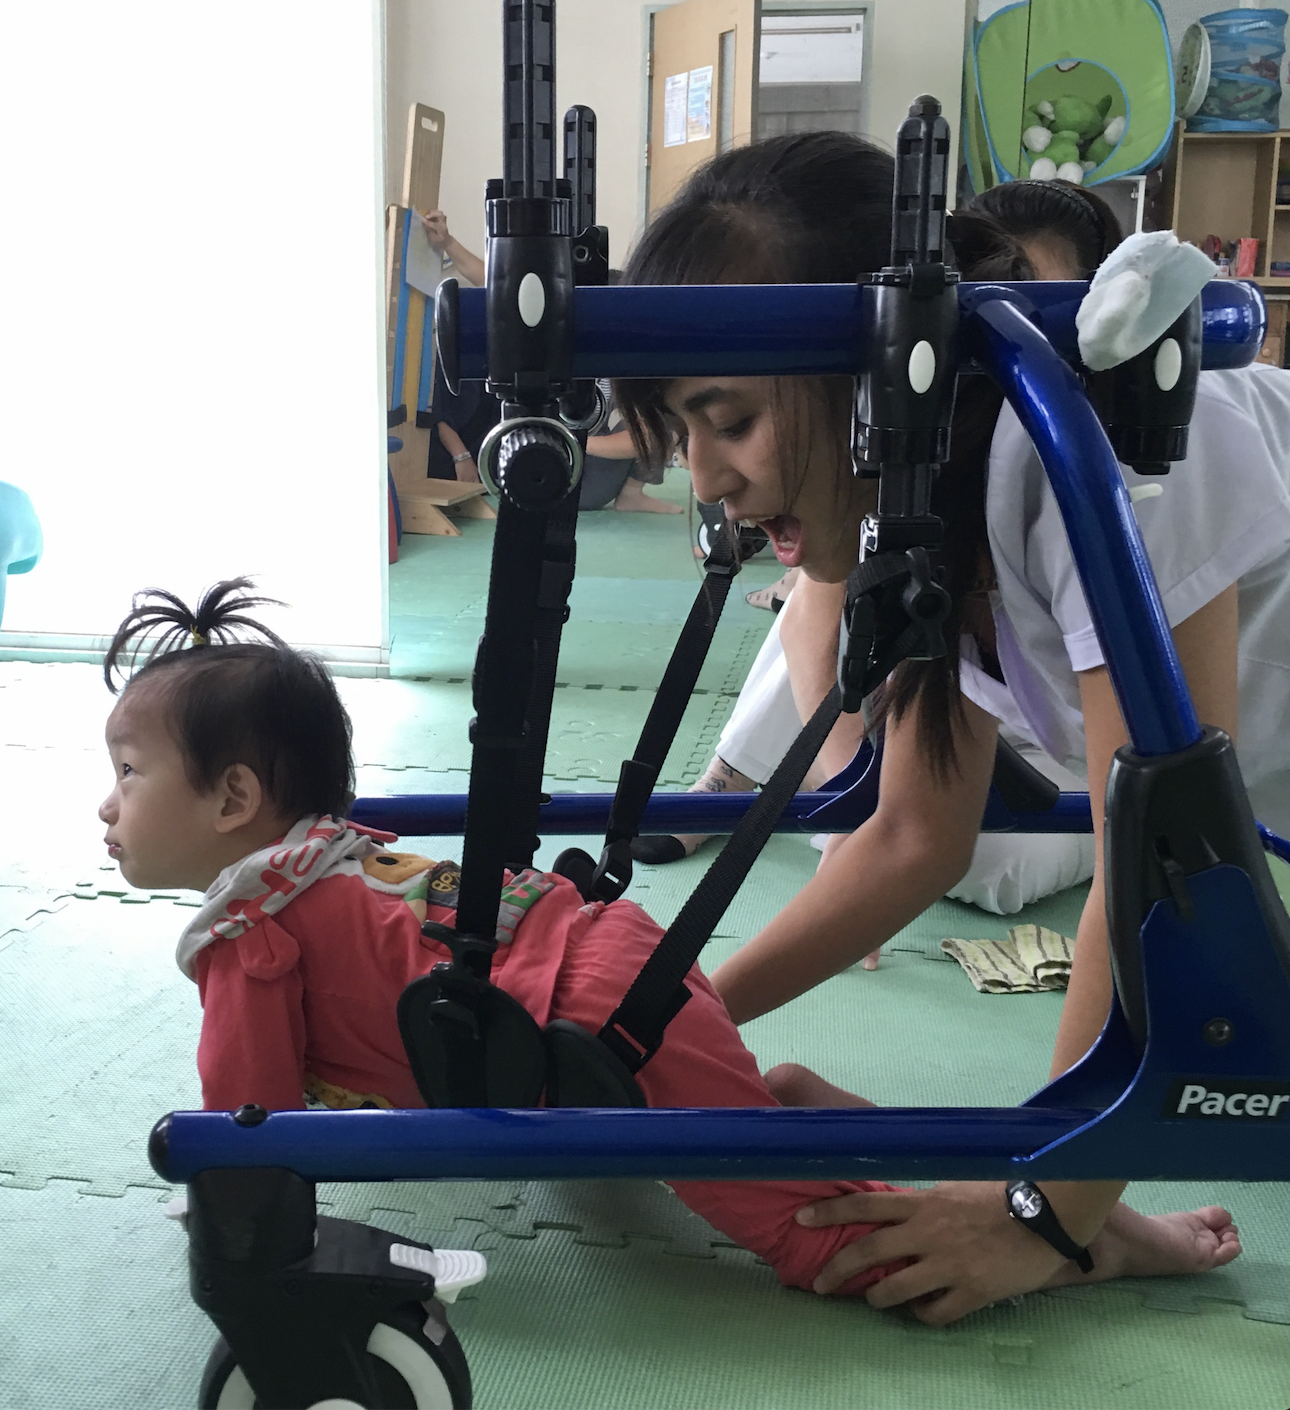 North Korean doctor helping a child with Cerebral Palsy